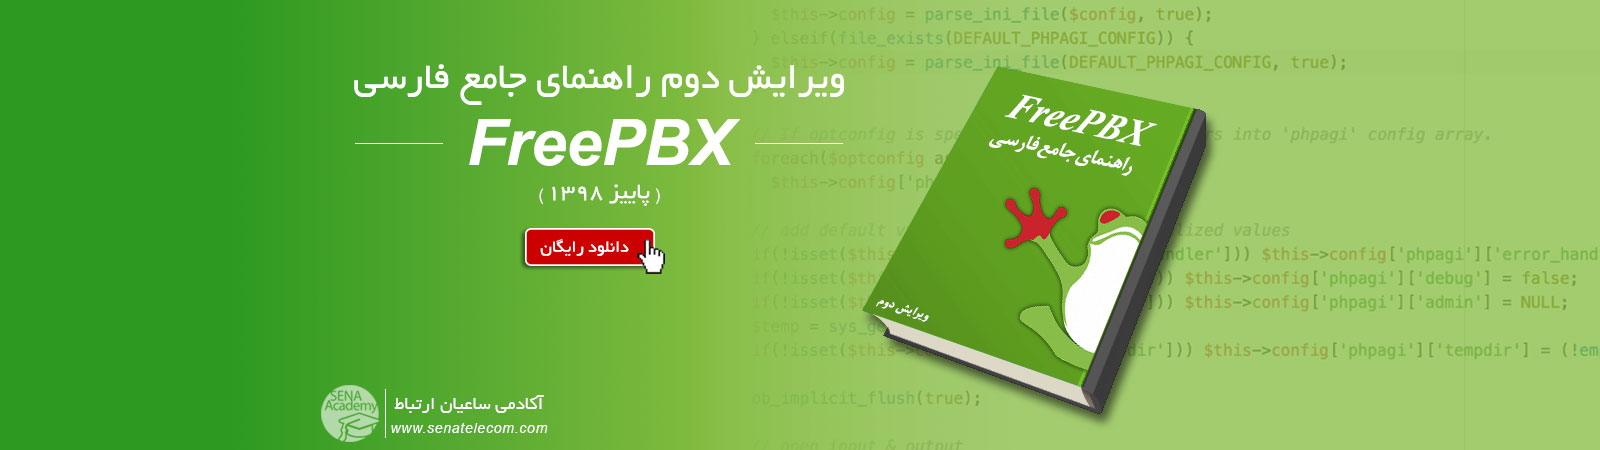 freepbx - ebook